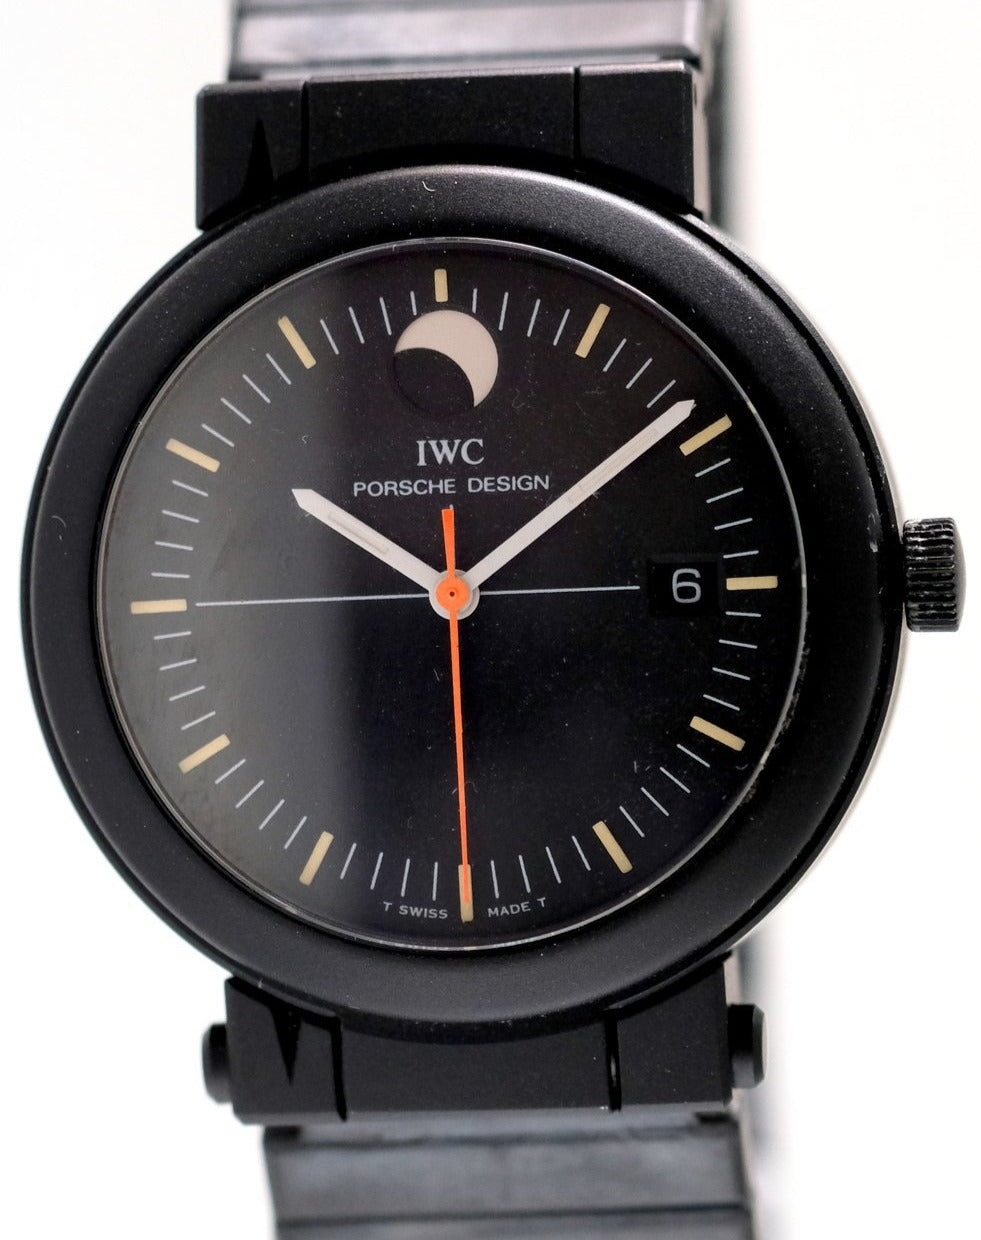 Porsche Design by IWC Compass Watch with Moonphase